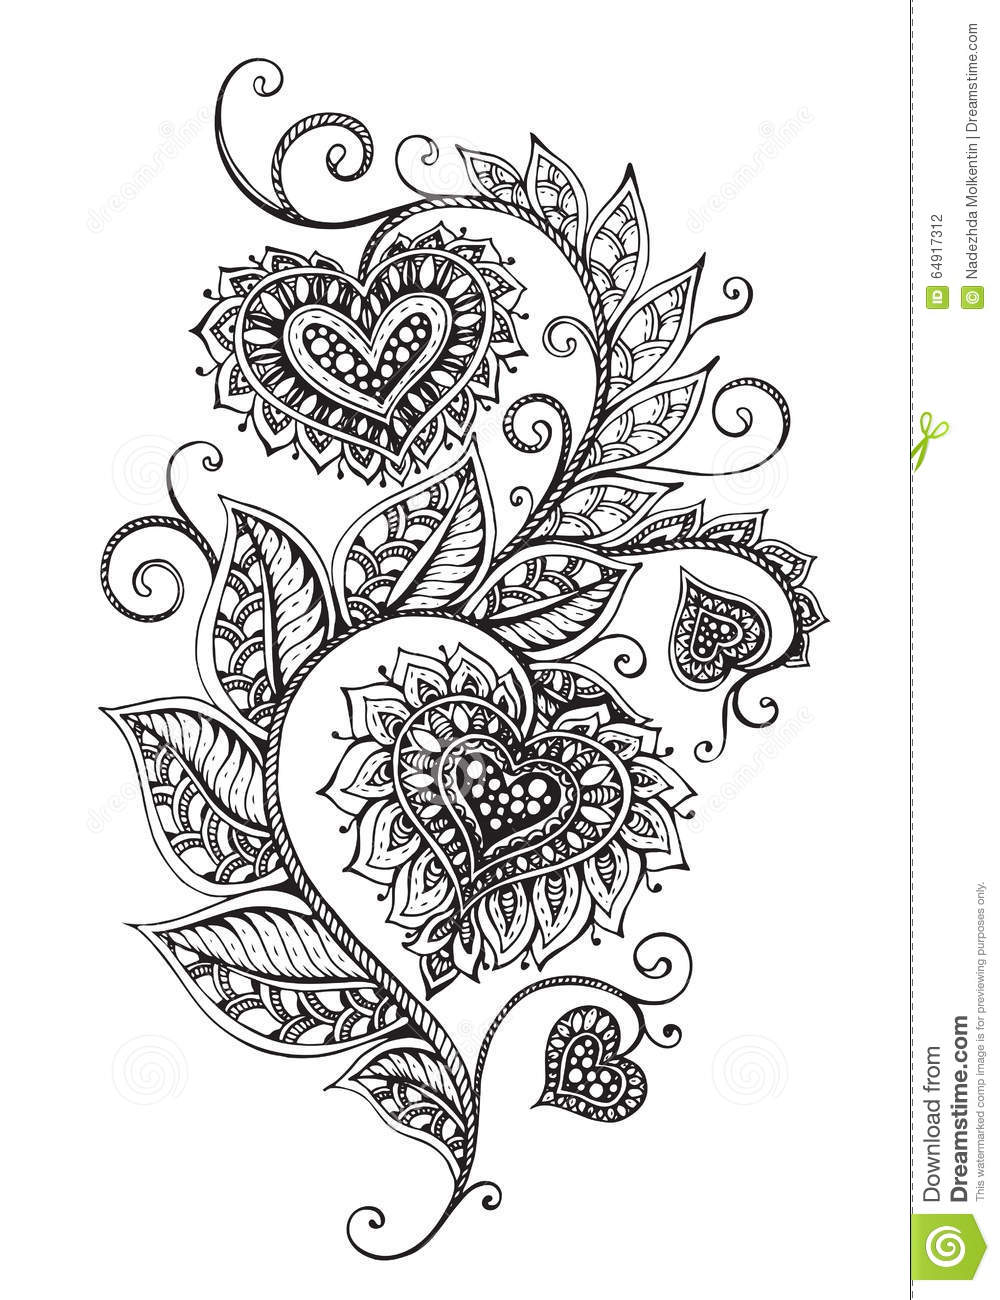 Vector Hand Drawn Ornate Floral Pattern Zentangle Style